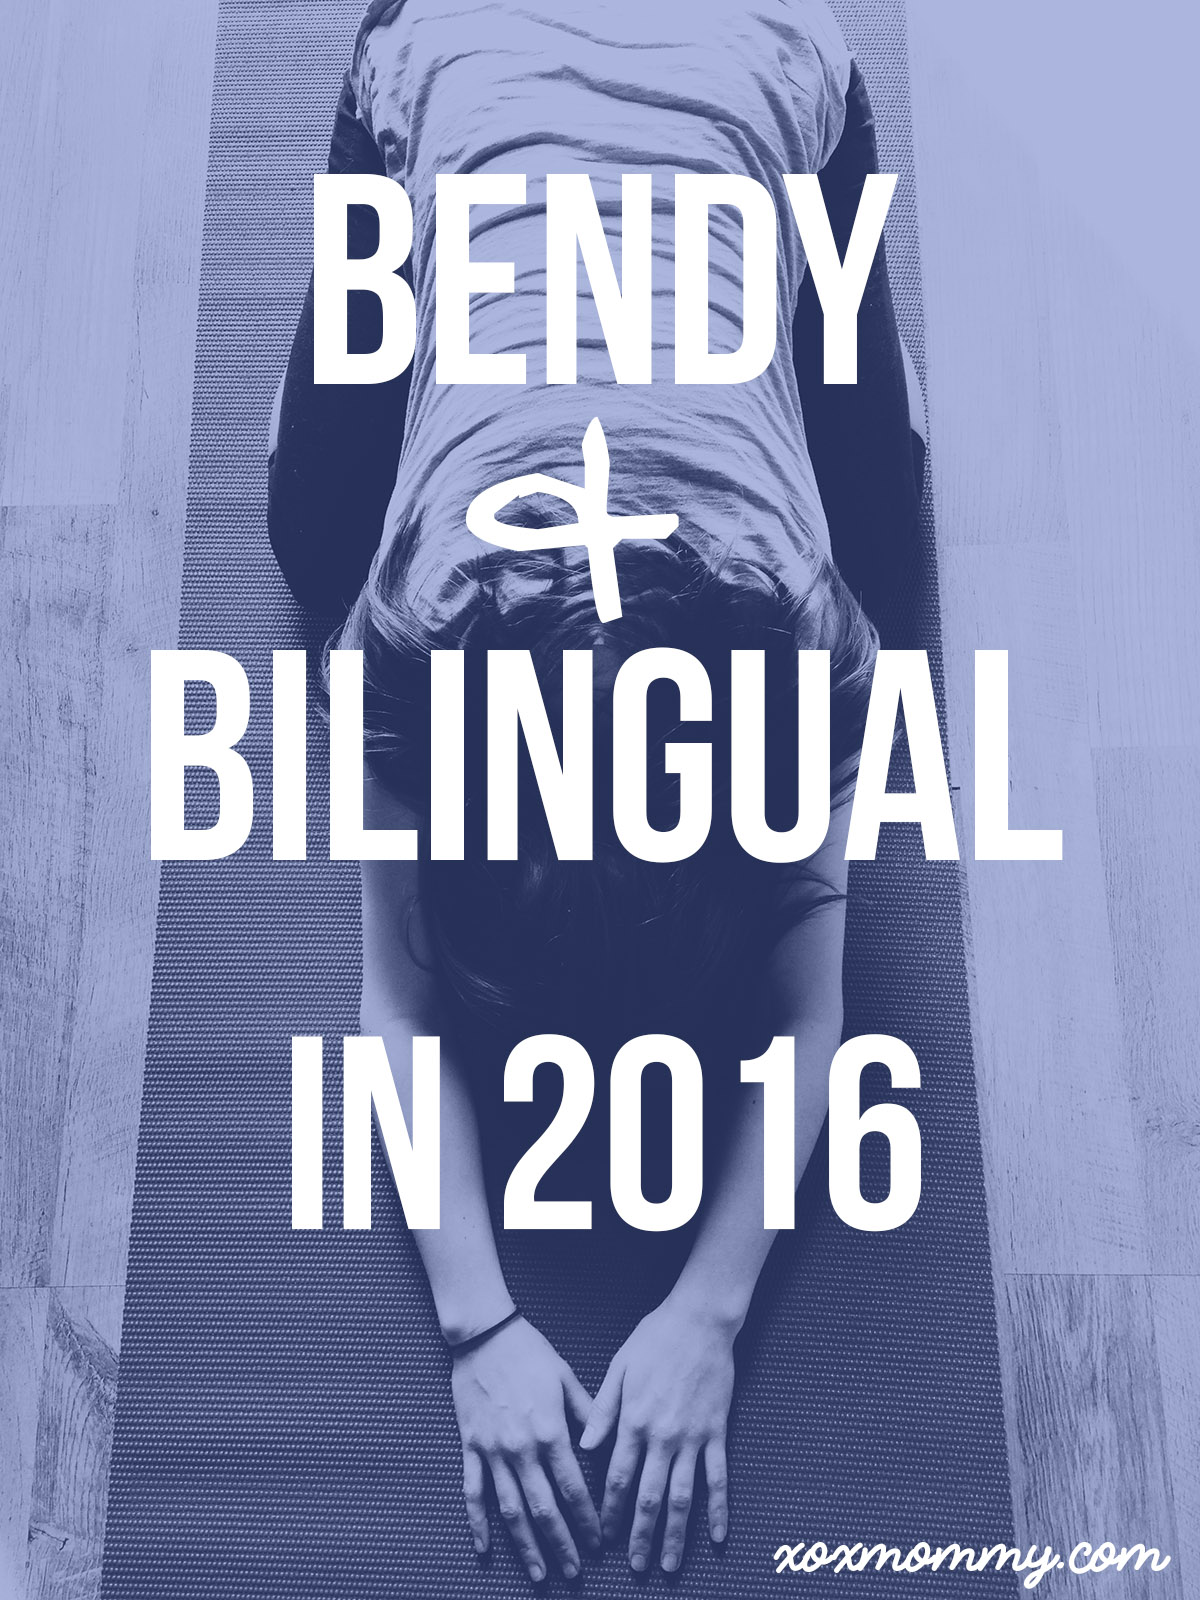 Bendy and Bilingual in 2016